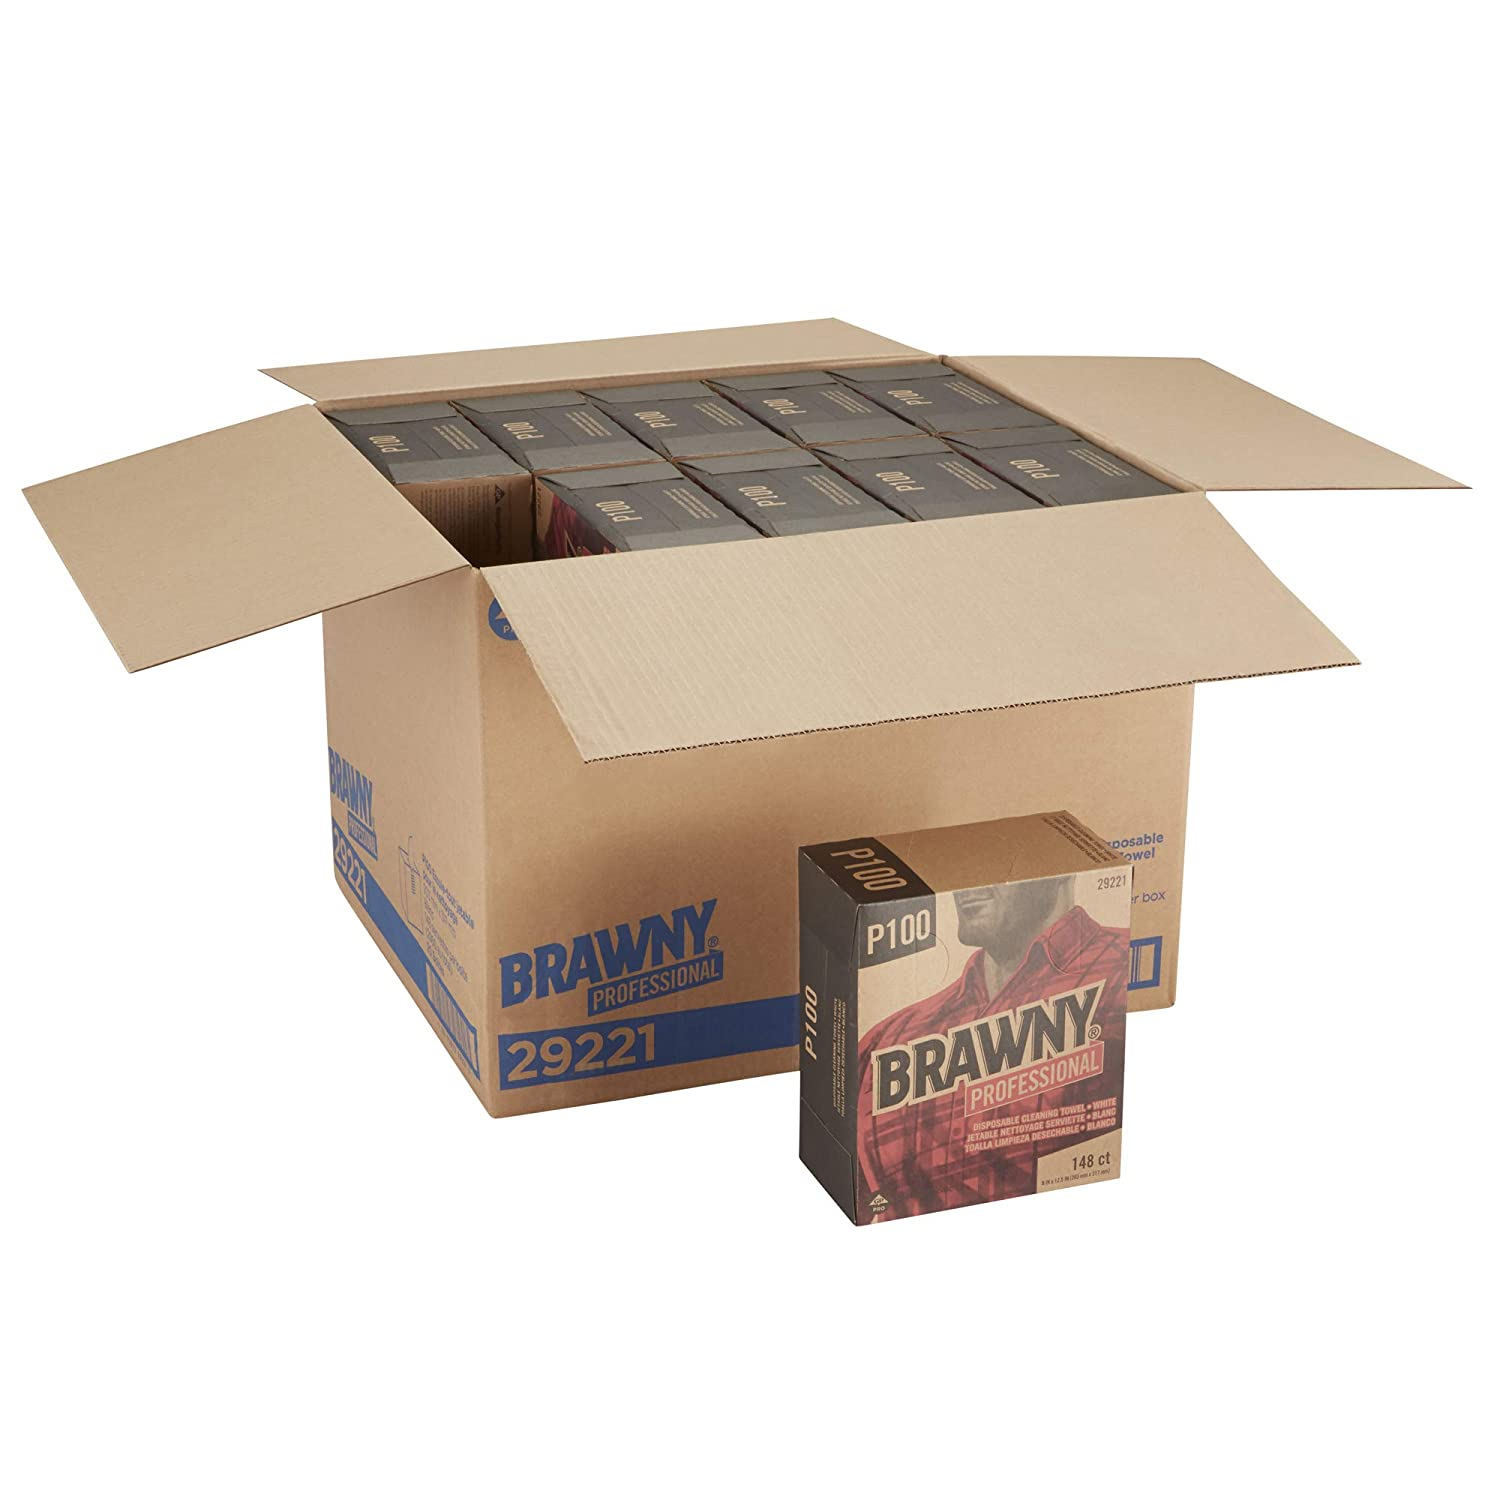 29222 Light Duty Brown Tall Box 20 Boxes @ 148 Count Brawny Professional P100 Disposable Cleaning Towel by GP PRO